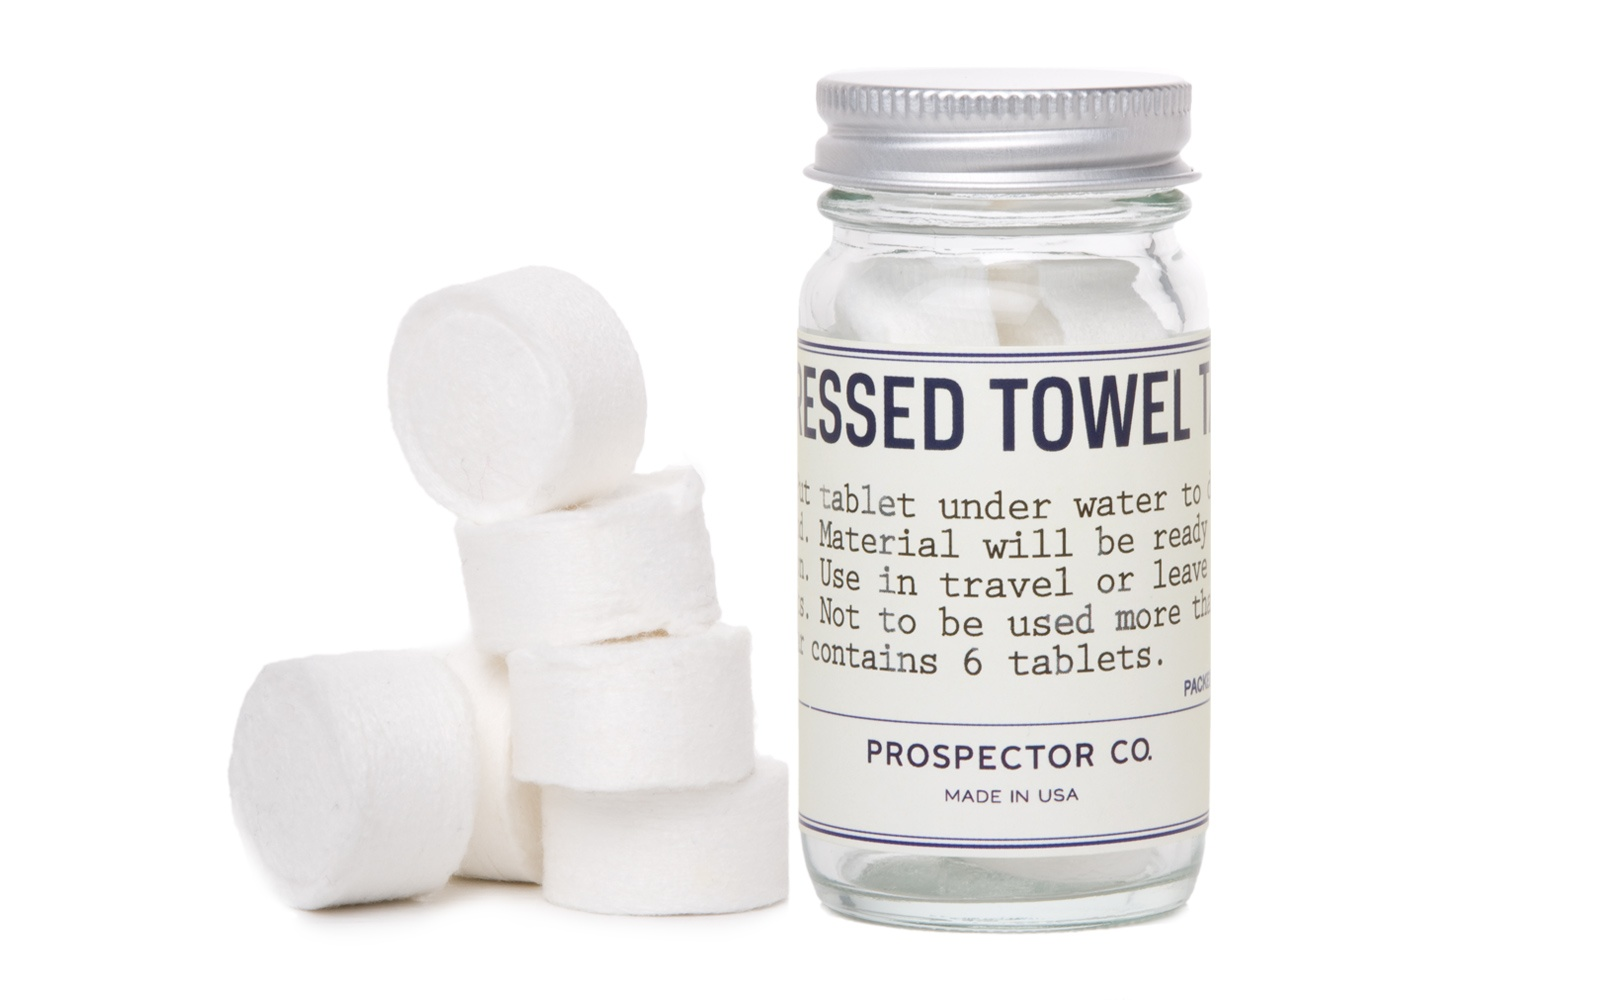 Prospector Co. Compressed Towels